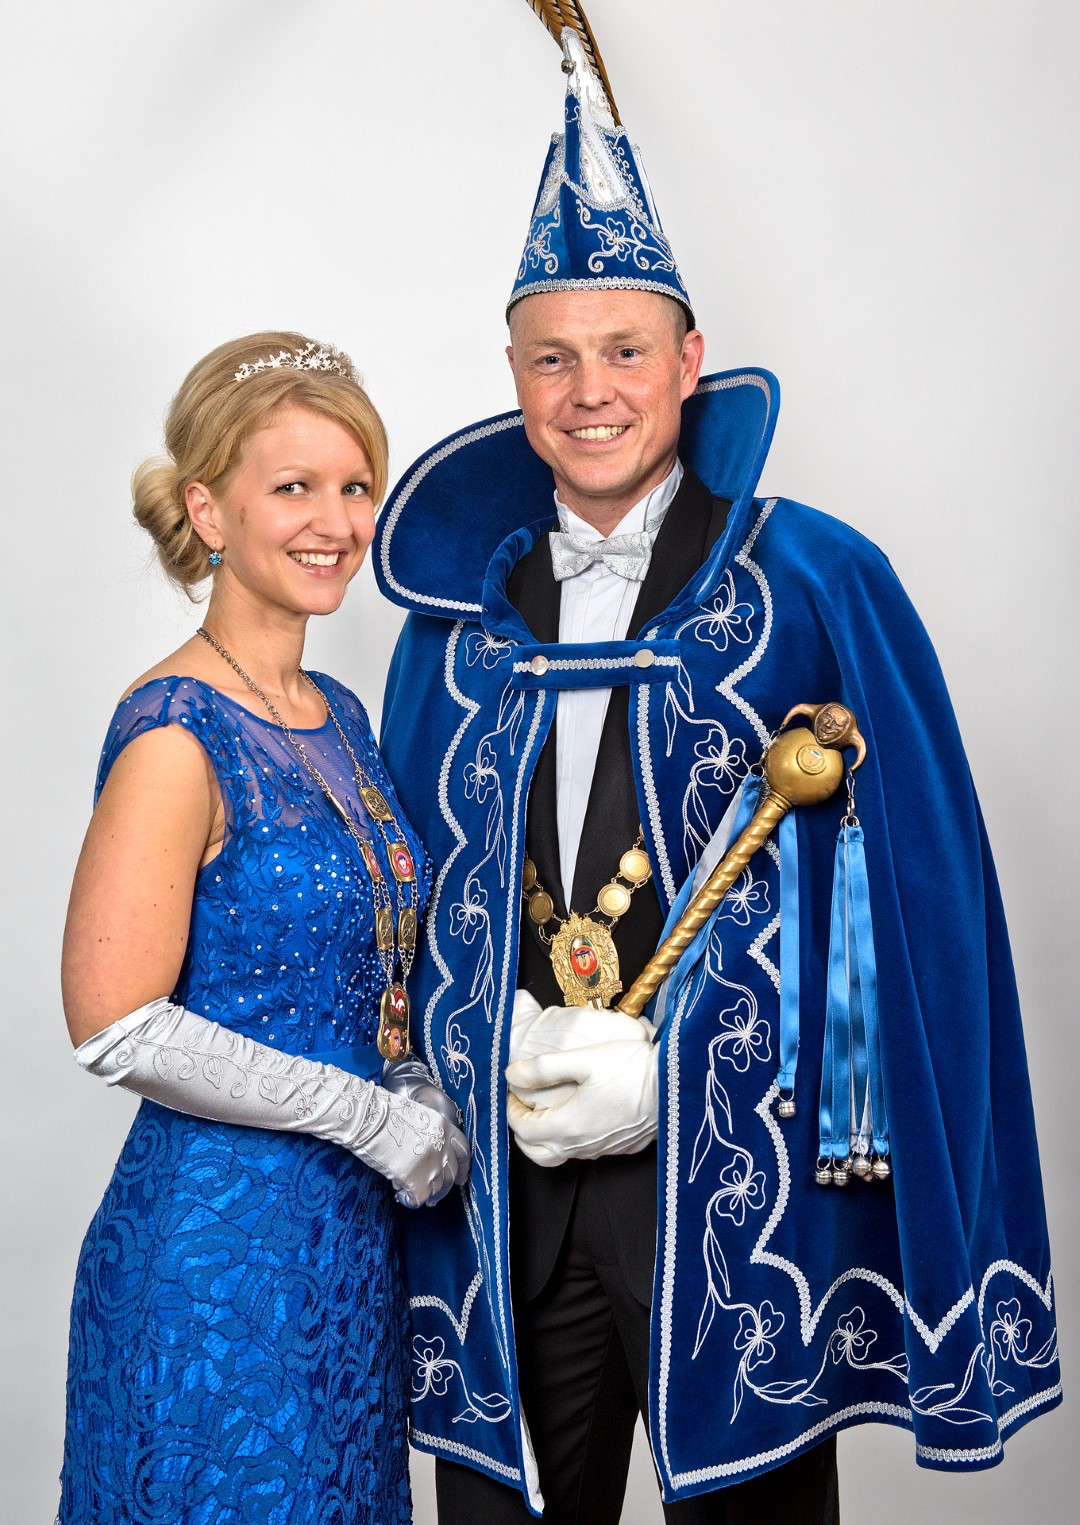 2015 2016 Richard de 1e en Prinses Susan Richard en Susan Veldhuis Large